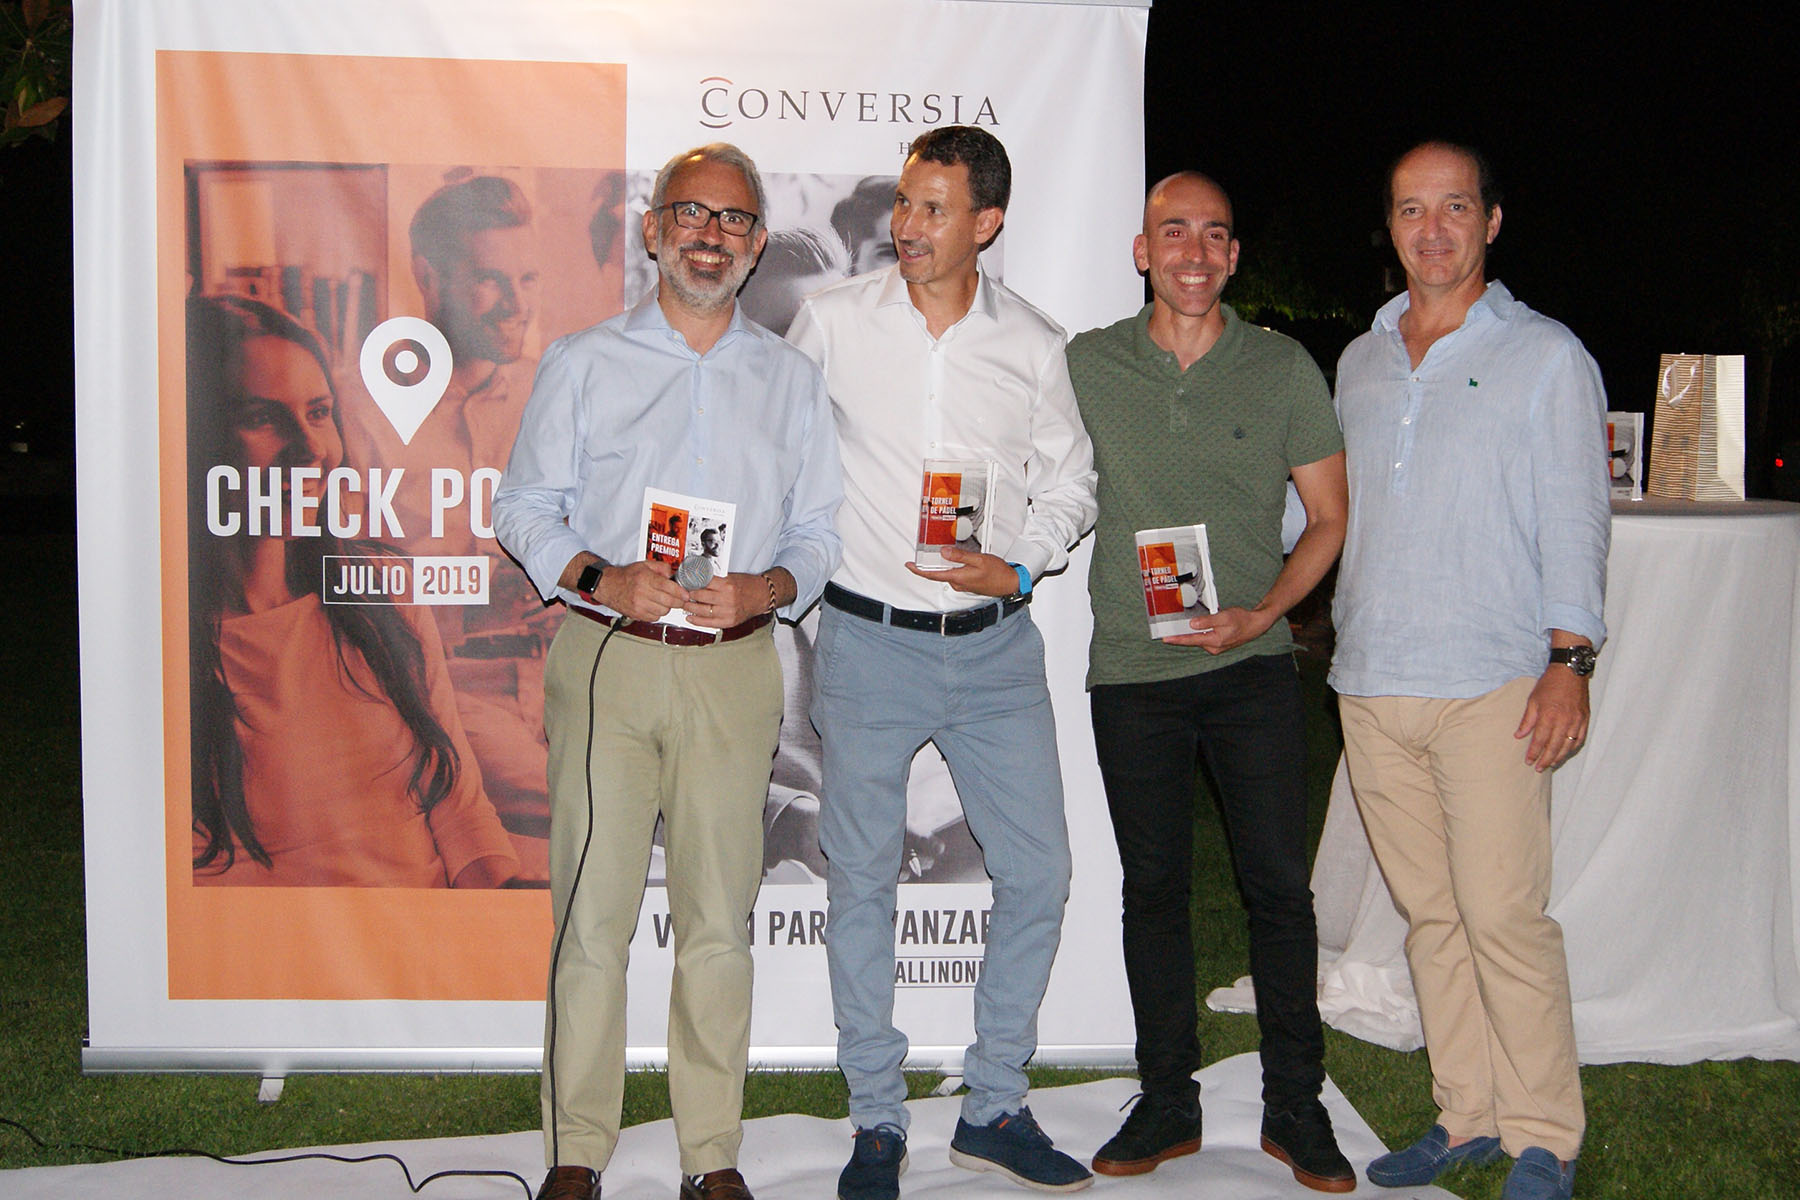 Conversia Check Point Julio 2019 Padel Finalistas Promesas